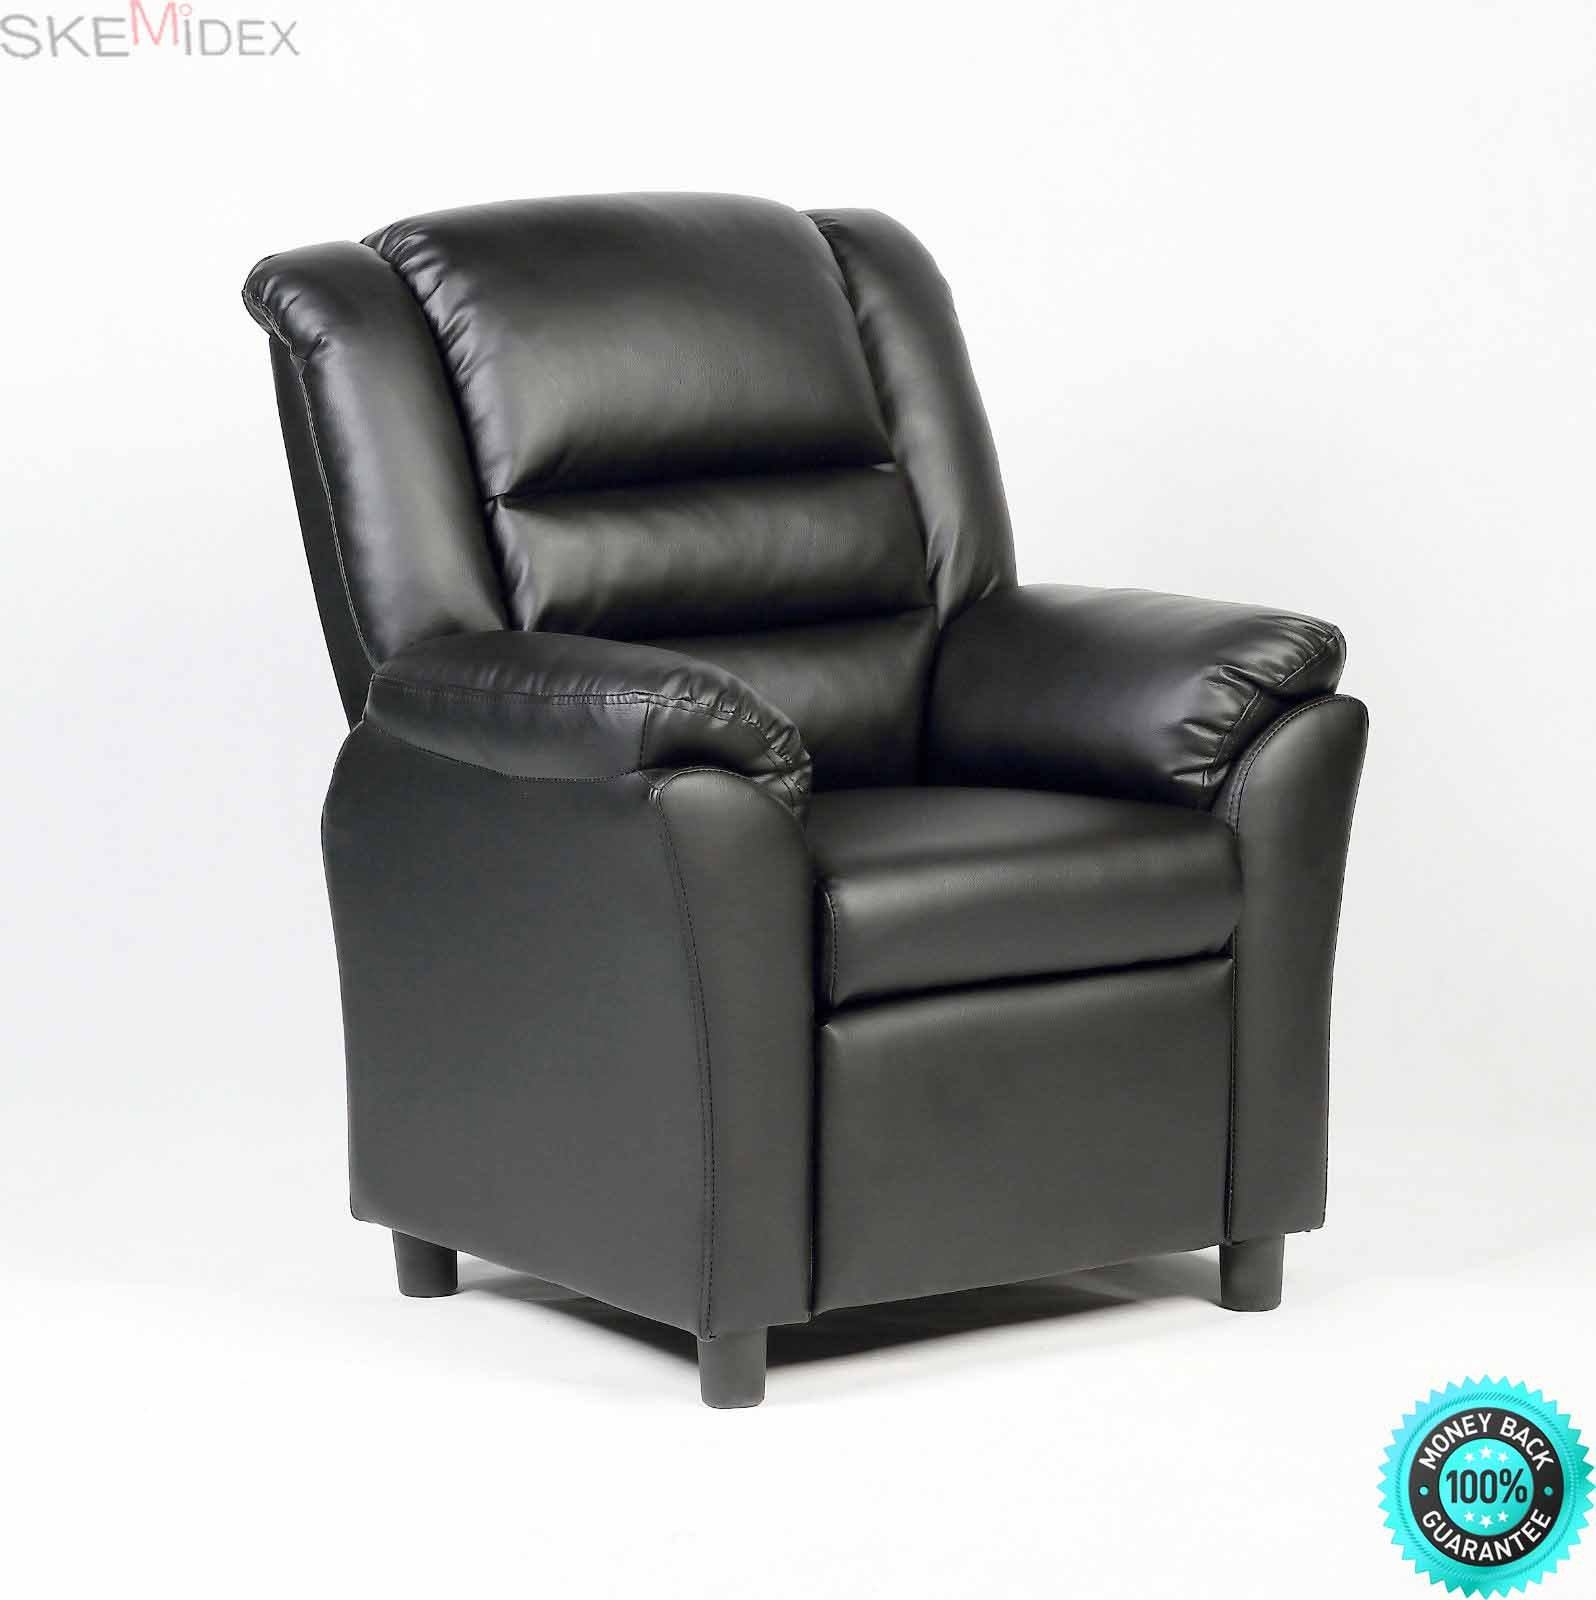 SKEMiDEX---Kids Sofa Manual Recliner Leather Ergonomic Lounge Chair Children Birthday Gift This is our deluxe ergonomic recliner sofa chair, which is a fun and multi-functional addition